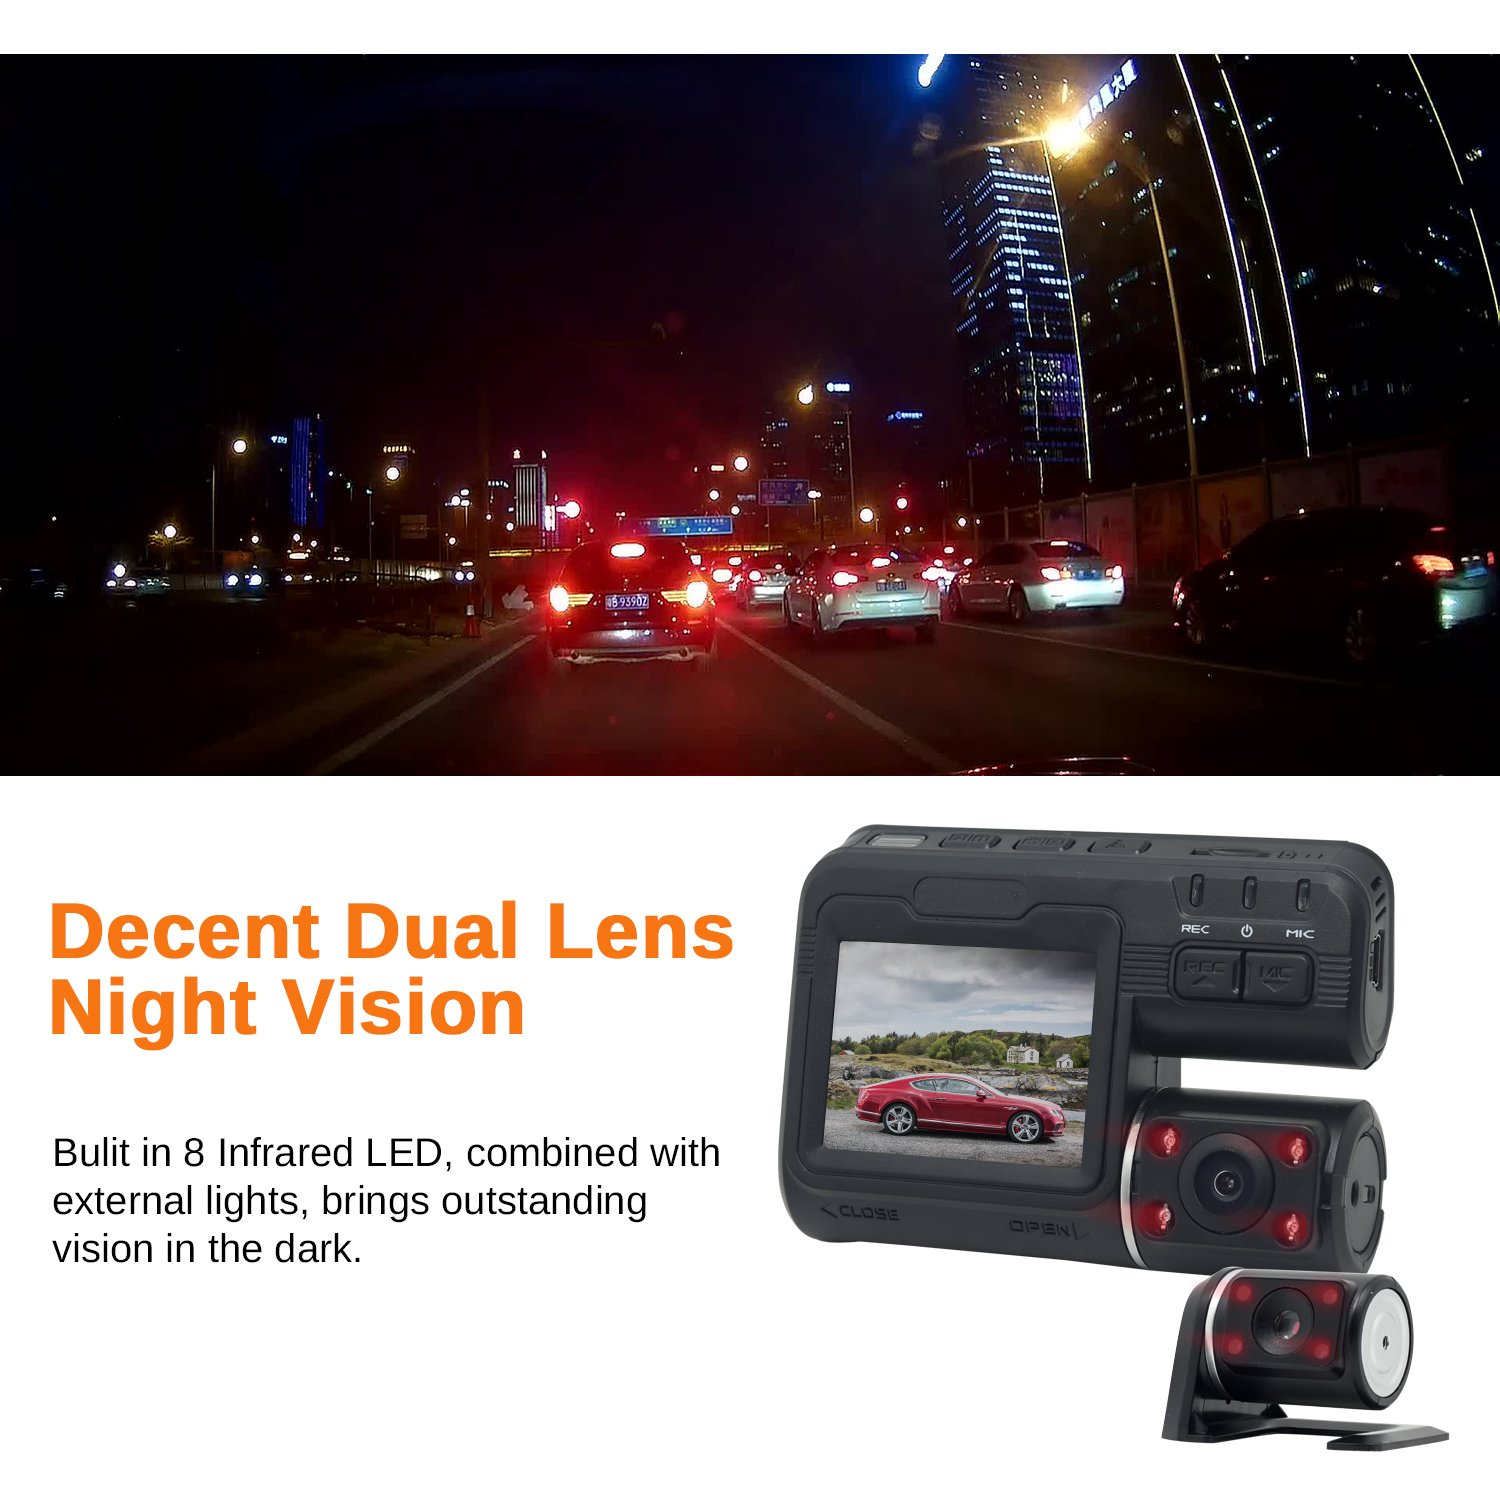 Night Vision Parking Guard G-Sensor Dual Dash Cam Front and Rear Dual Camera for Cars Loop Recording Yunoop 340 Degree Rotatable Camera,140 Degree Wide Angle Car On Dash Video